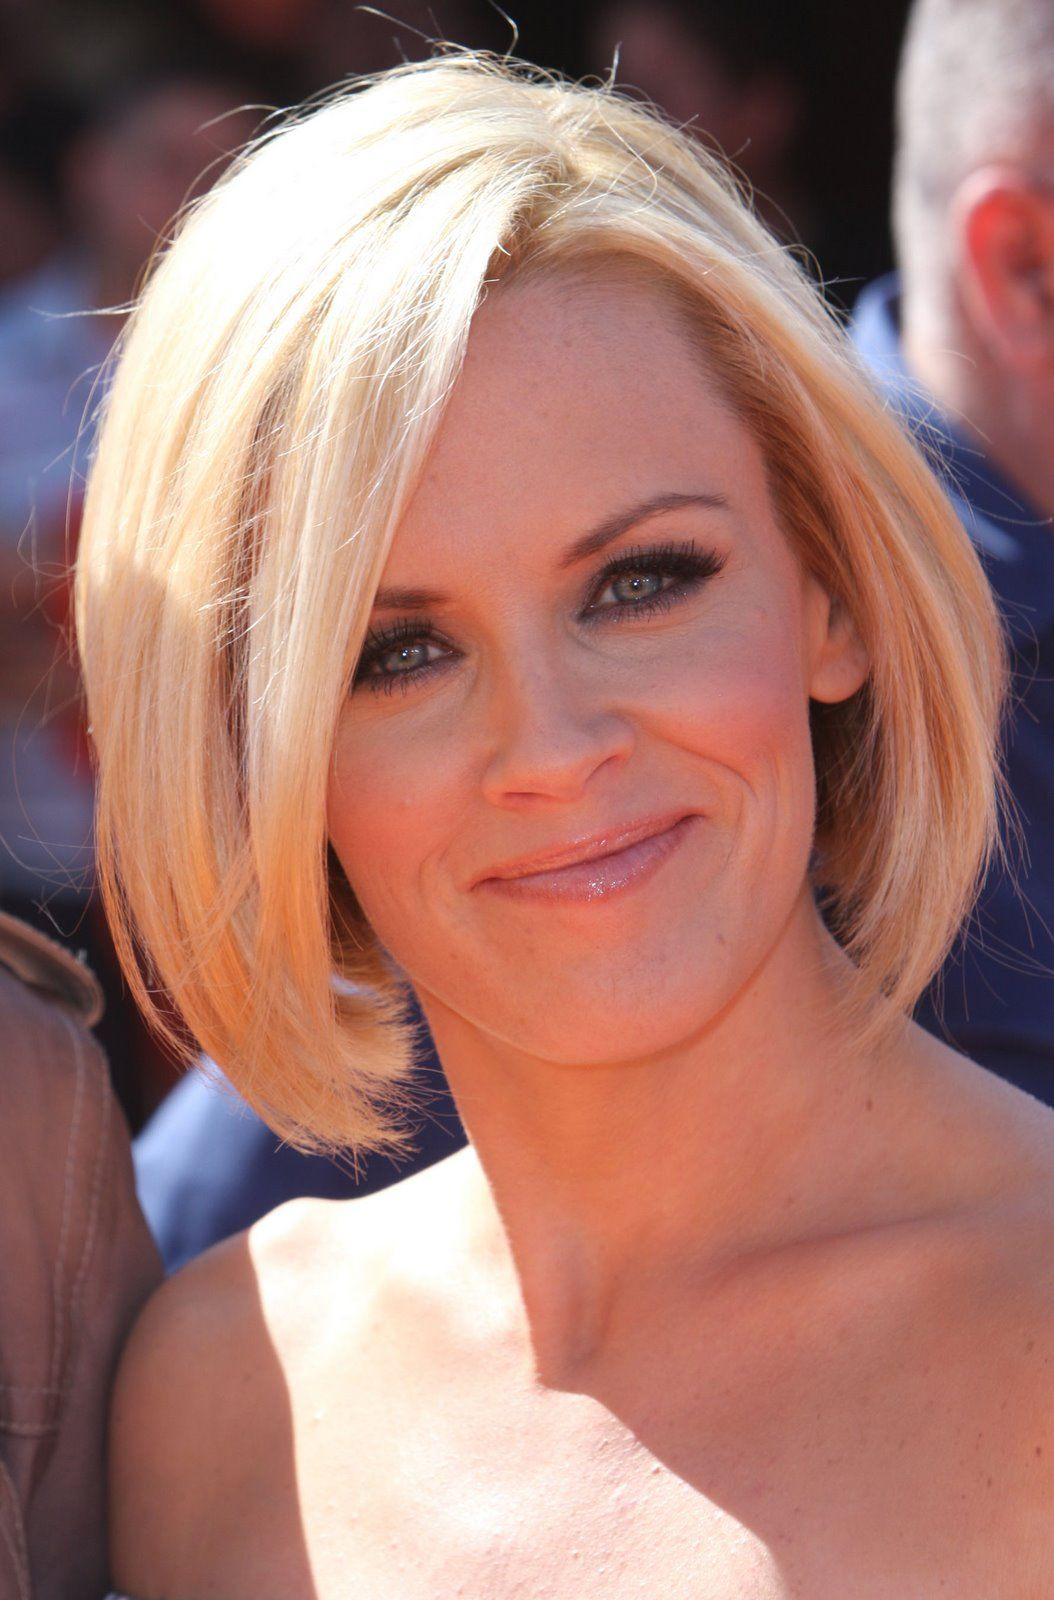 Hort Bob Hairstyles For The Ones Who Like To Be Themselves - Bob hairstyle origin